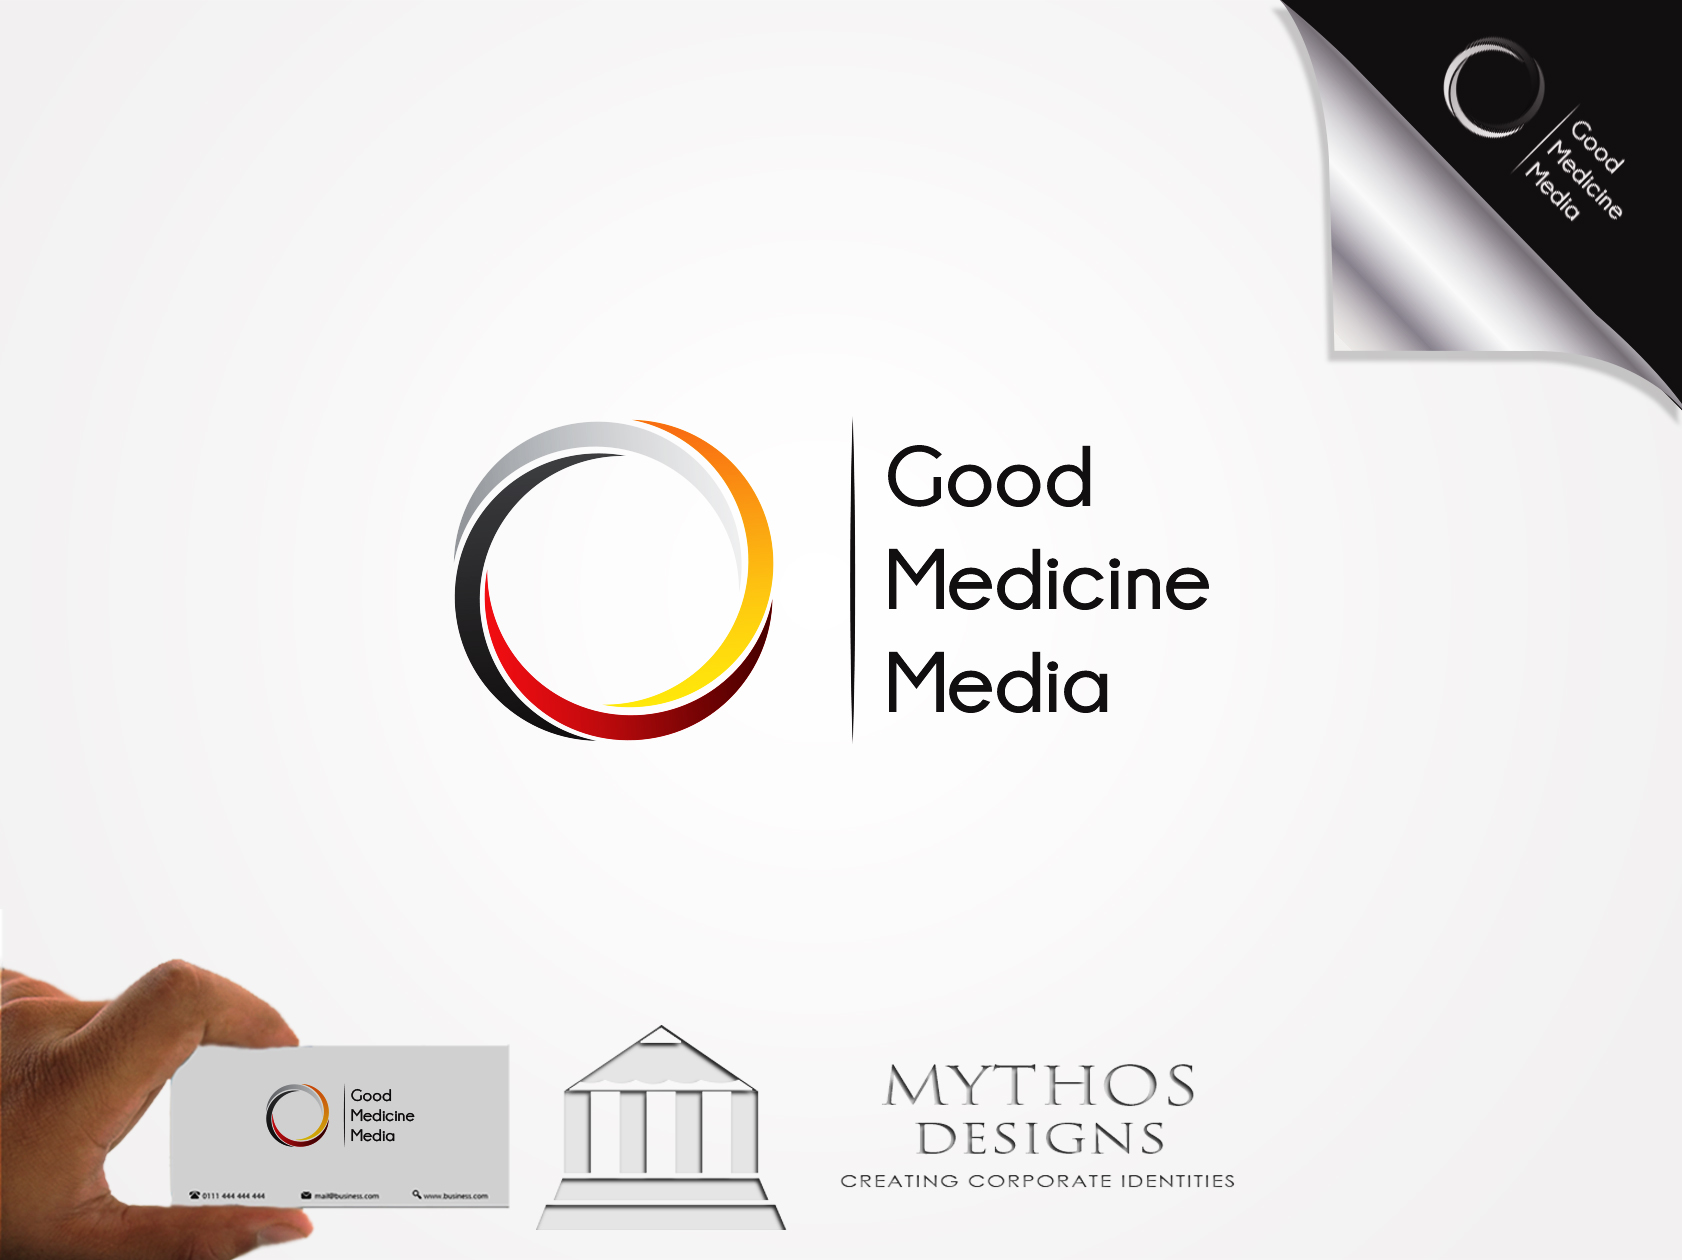 Logo Design by Mythos Designs - Entry No. 170 in the Logo Design Contest Good Medicine Media Logo Design.